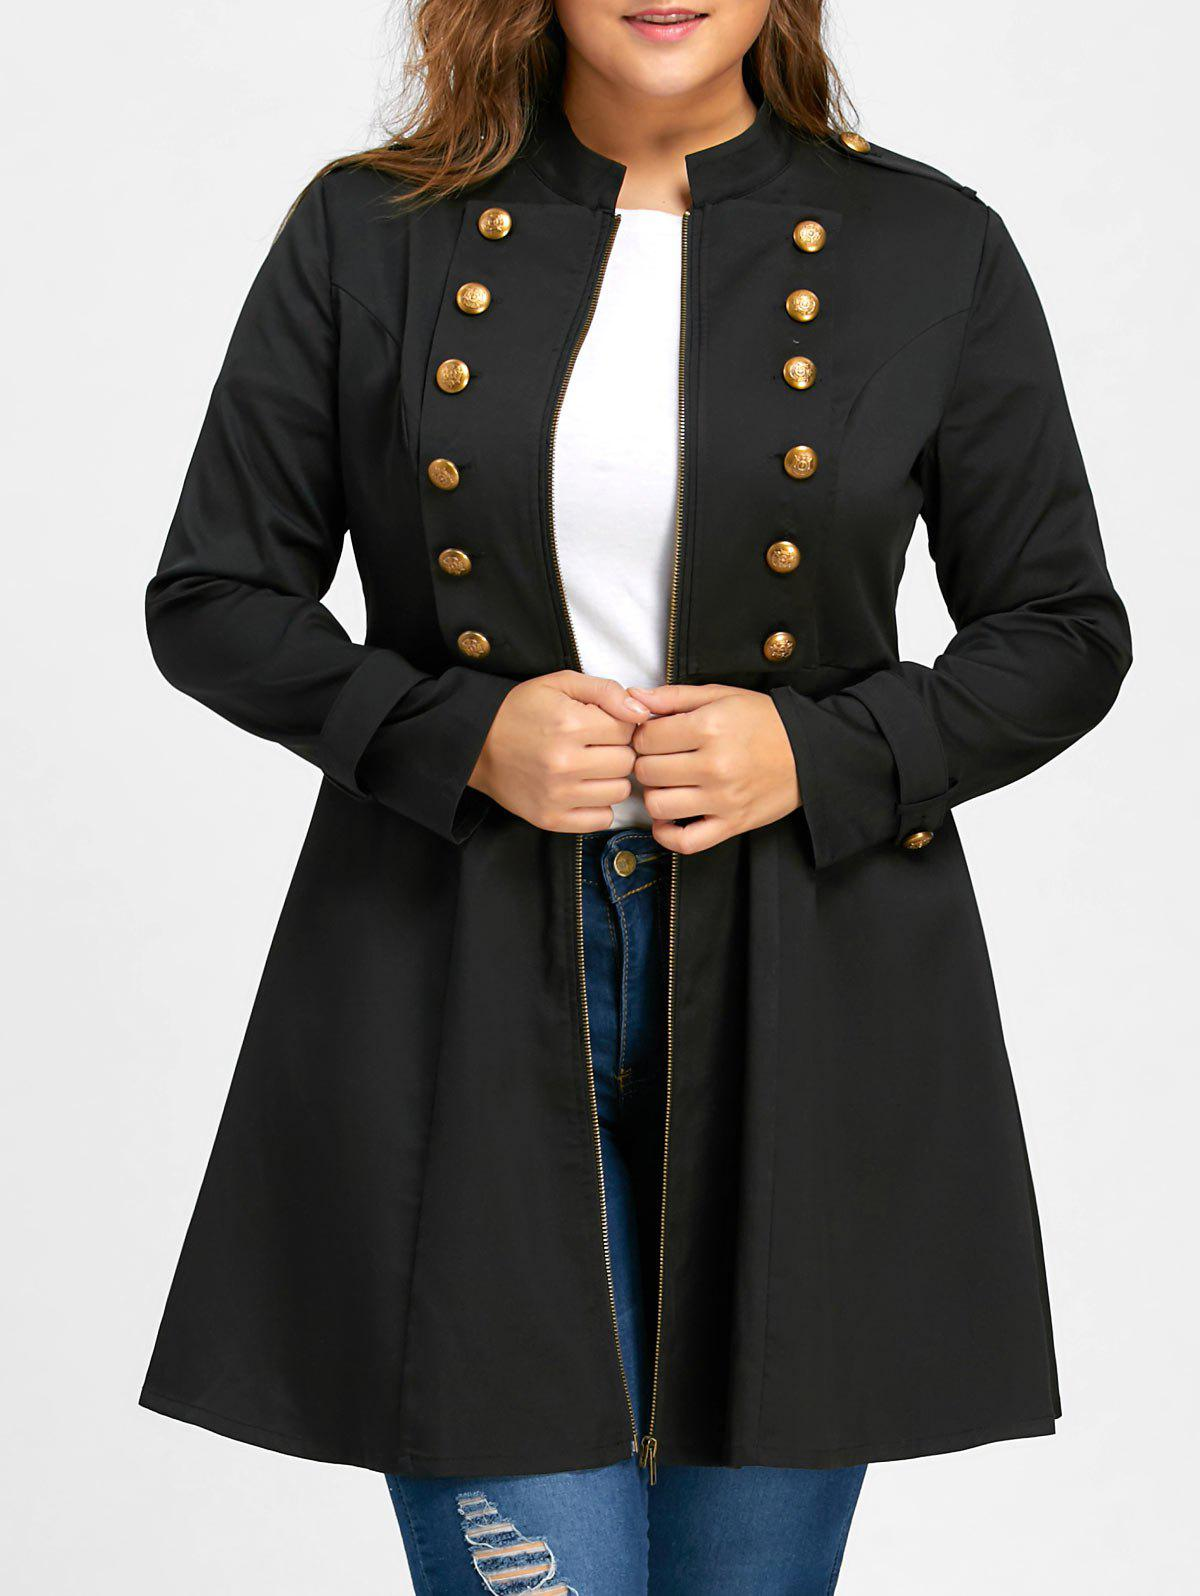 99dbafe121e 46% OFF   2019 Plus Size Double Breasted Epaulet Flare Coat ...